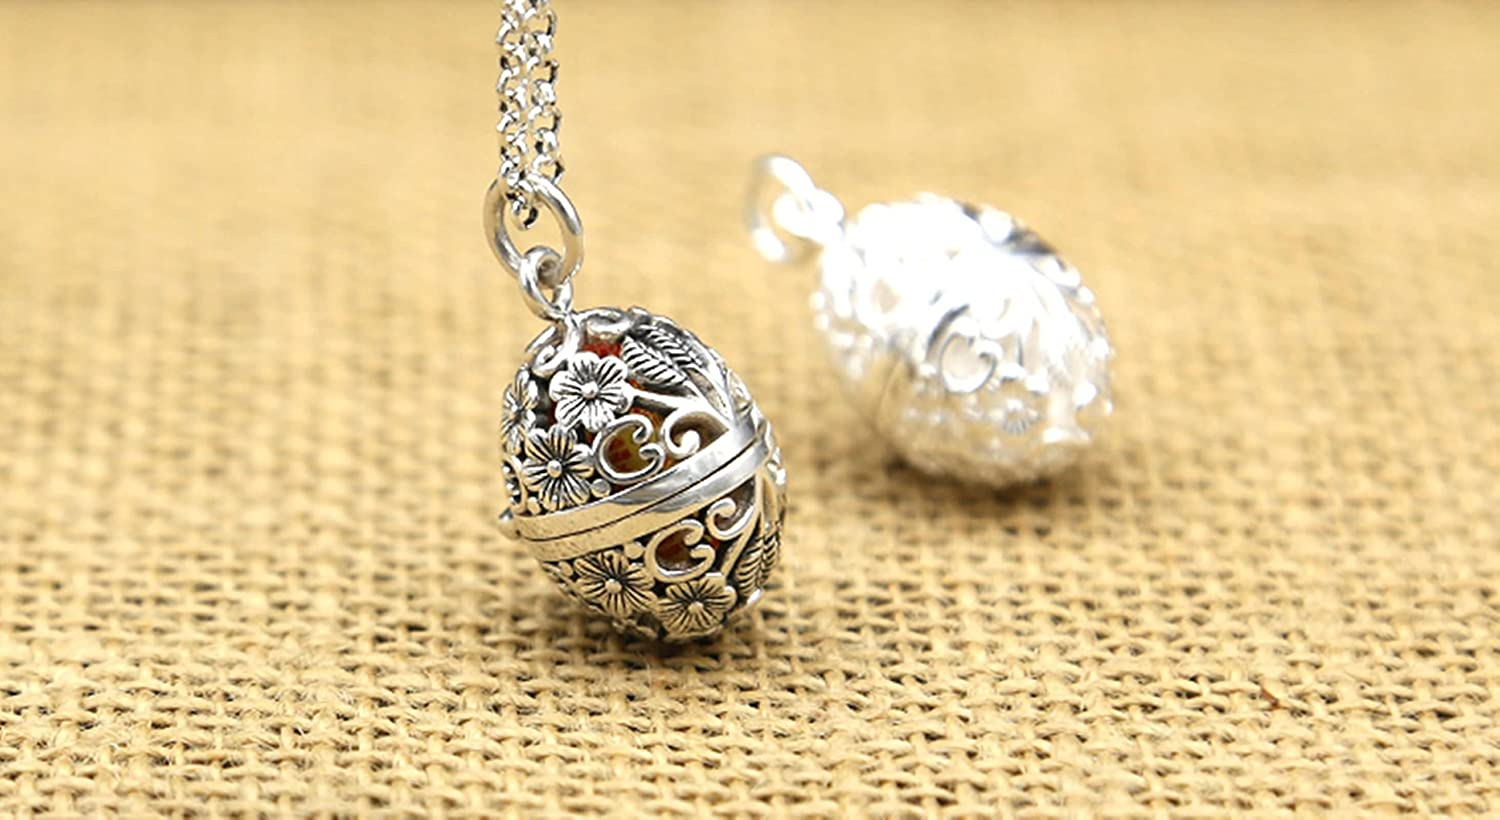 AMDXD Jewelry Men Women S925 Sterling Silver Pendant Necklaces Plum Blossom Hollow Gawu Box Pendant